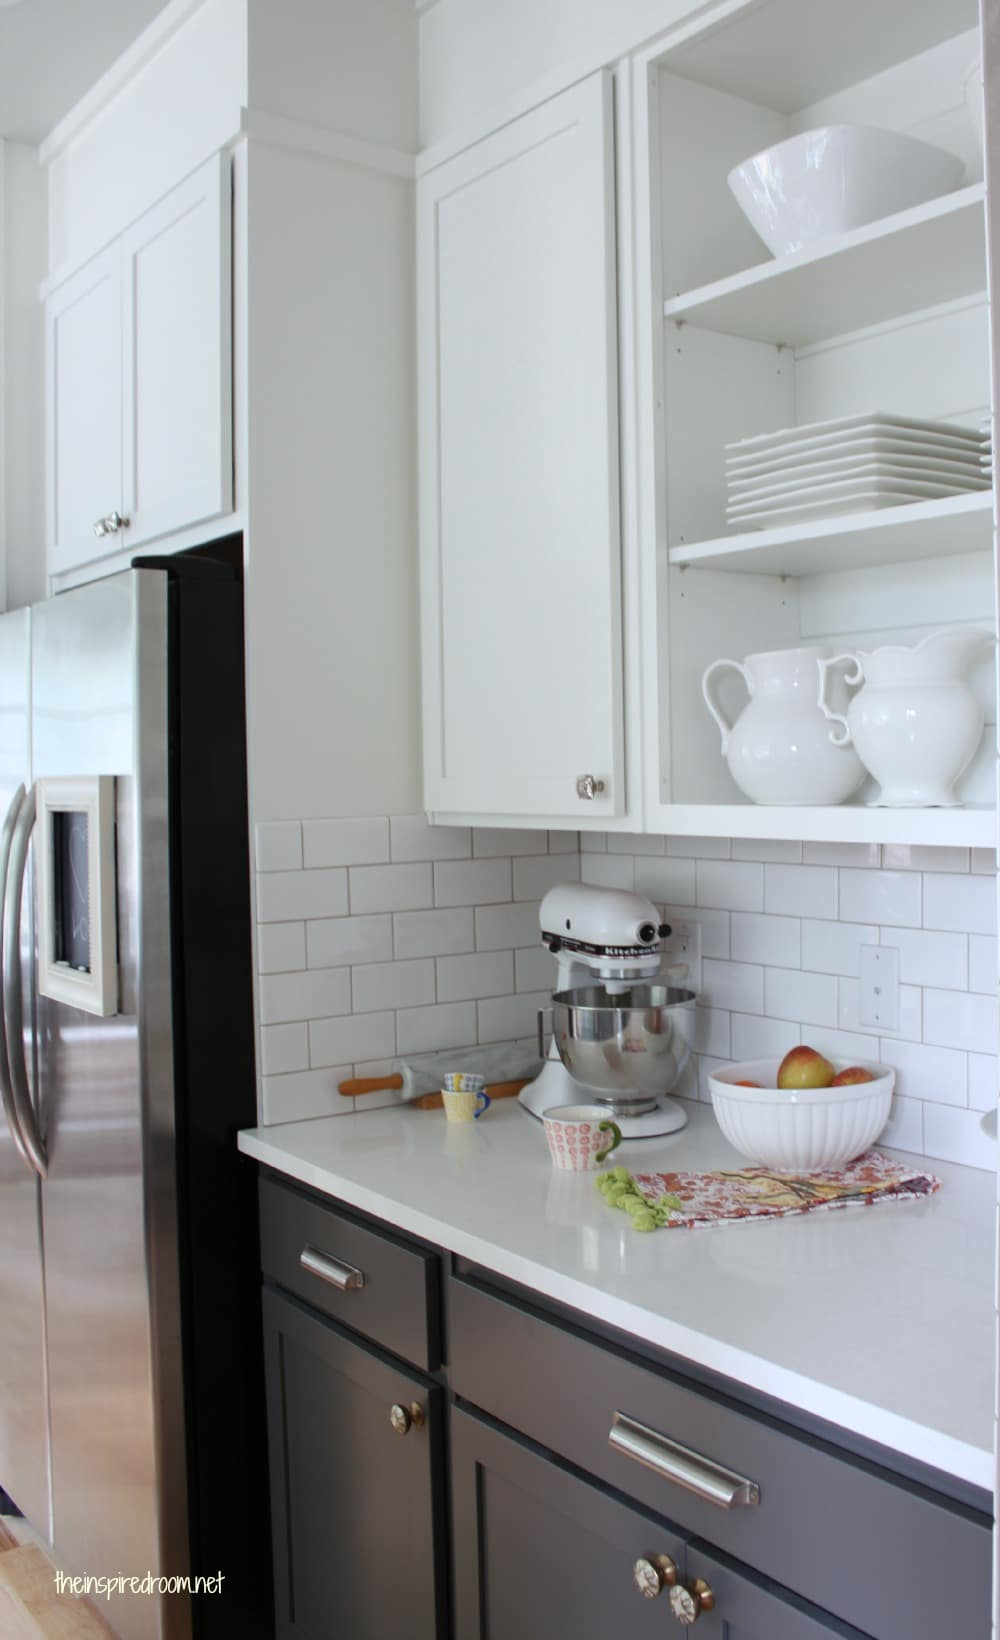 My Kitchen Cabinet Colors {Before & After Cabinets!} - The